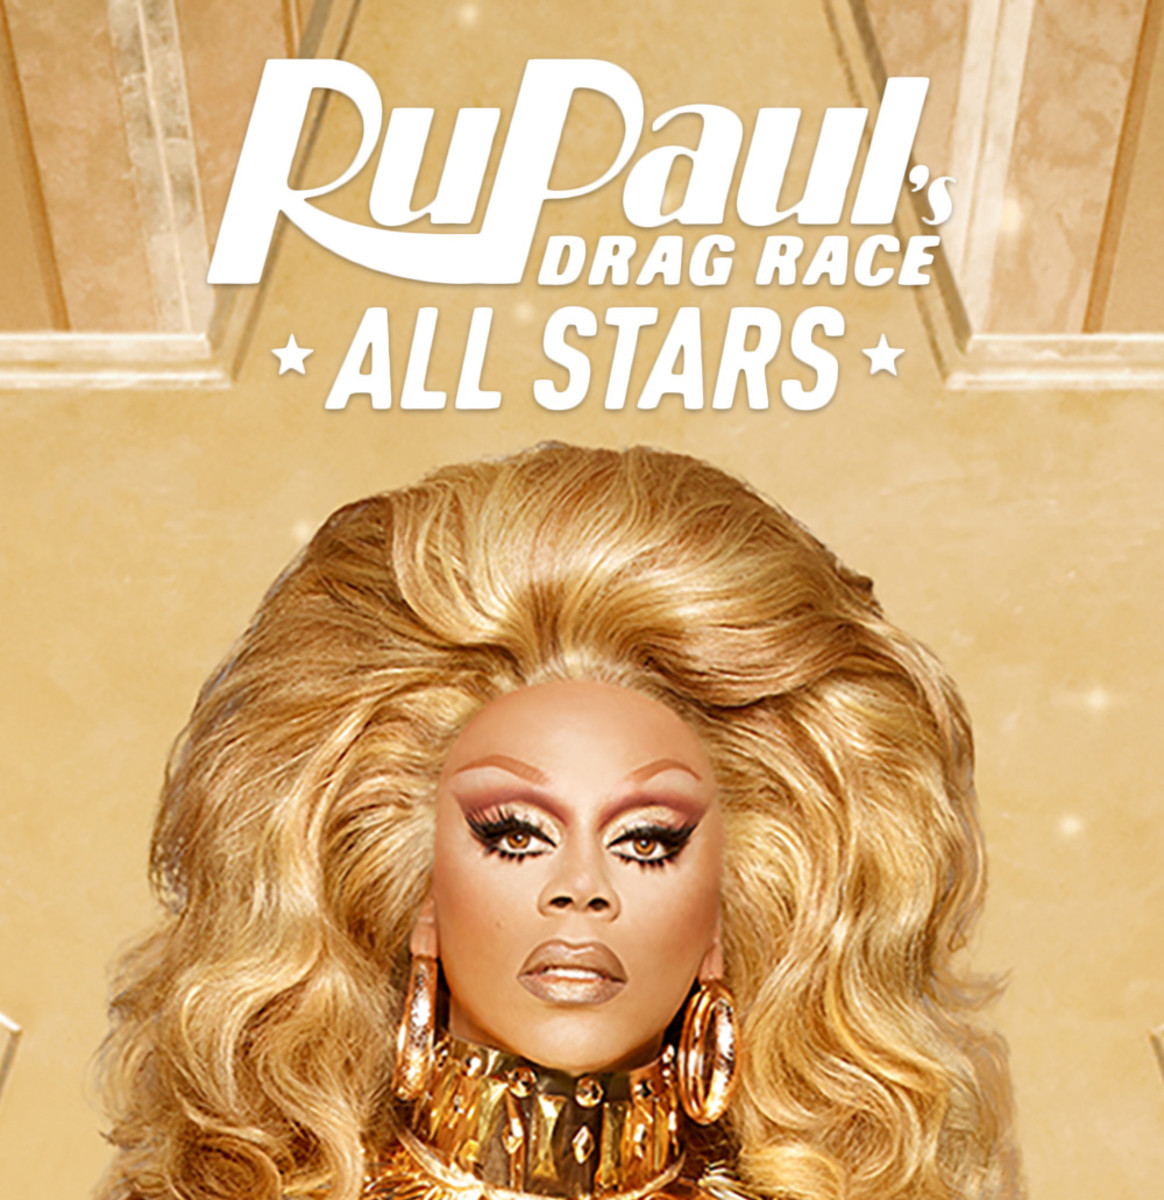 10 Fierce Queens That We Need to See on RuPaul's Drag Race All Stars!